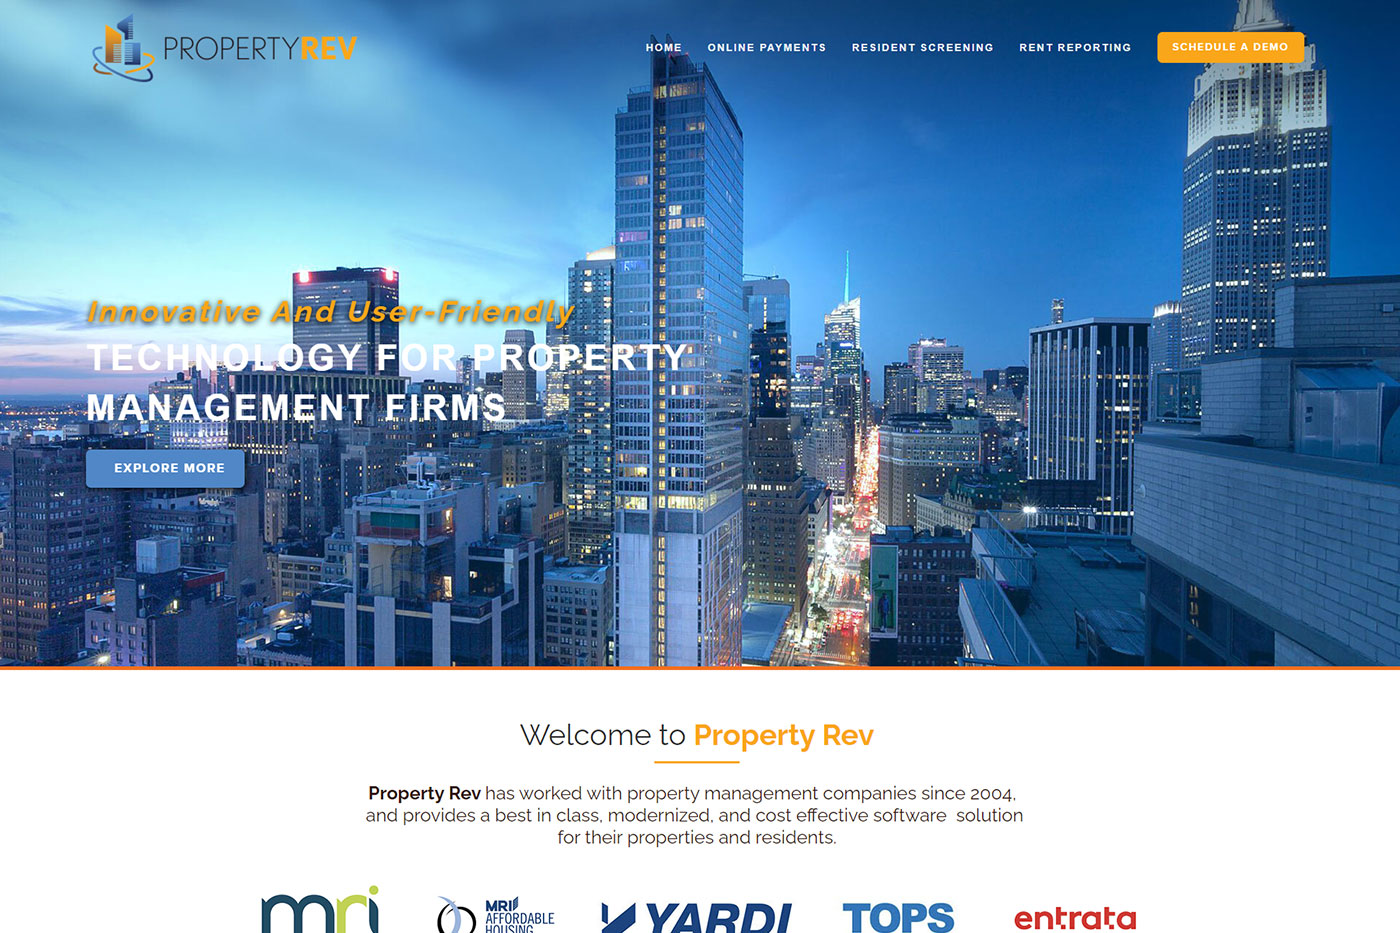 PROPERTY REV